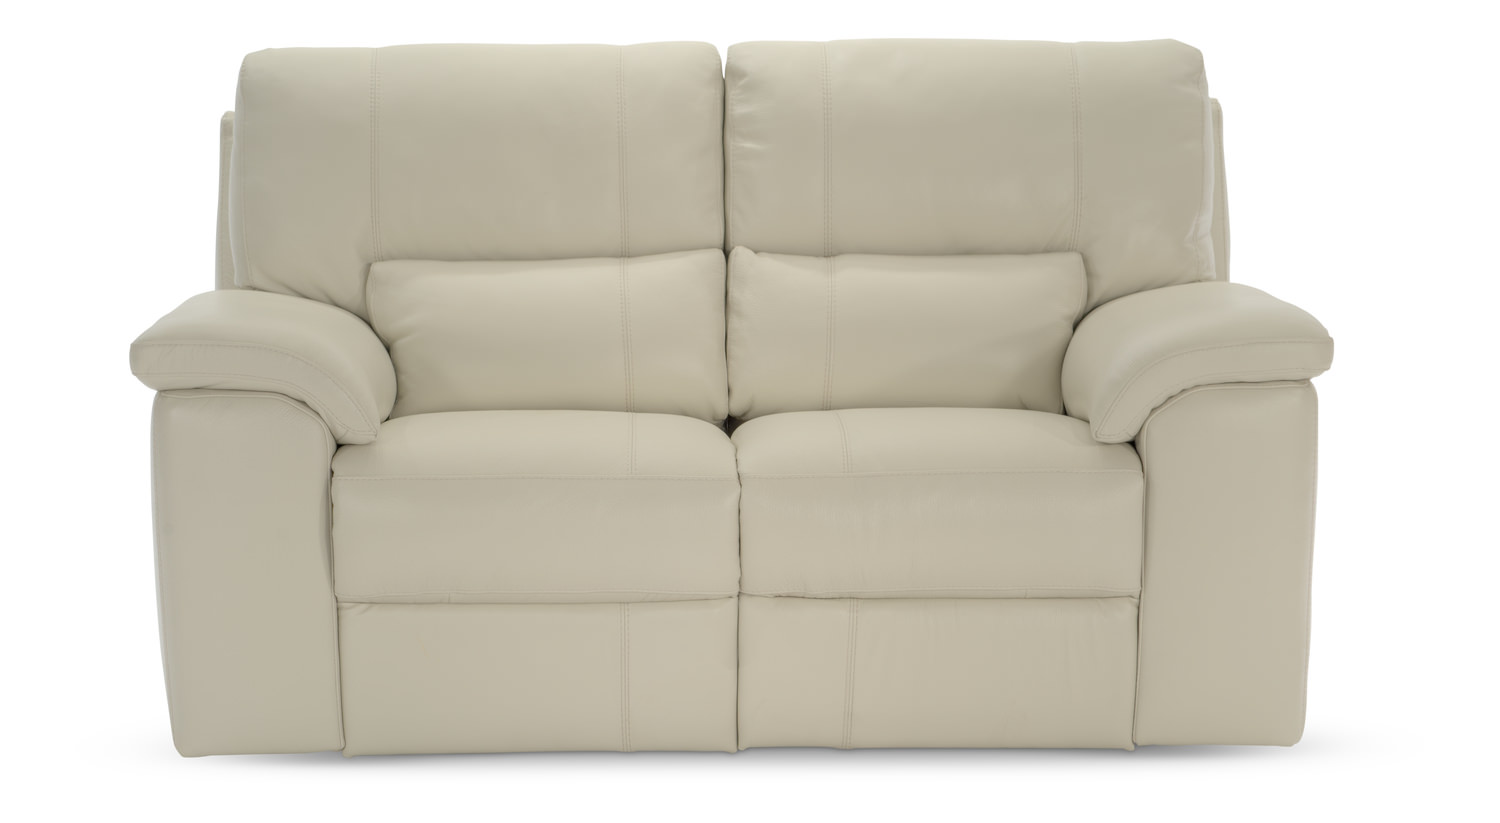 Lucerne Leather Power Reclining Loveseat - Bone